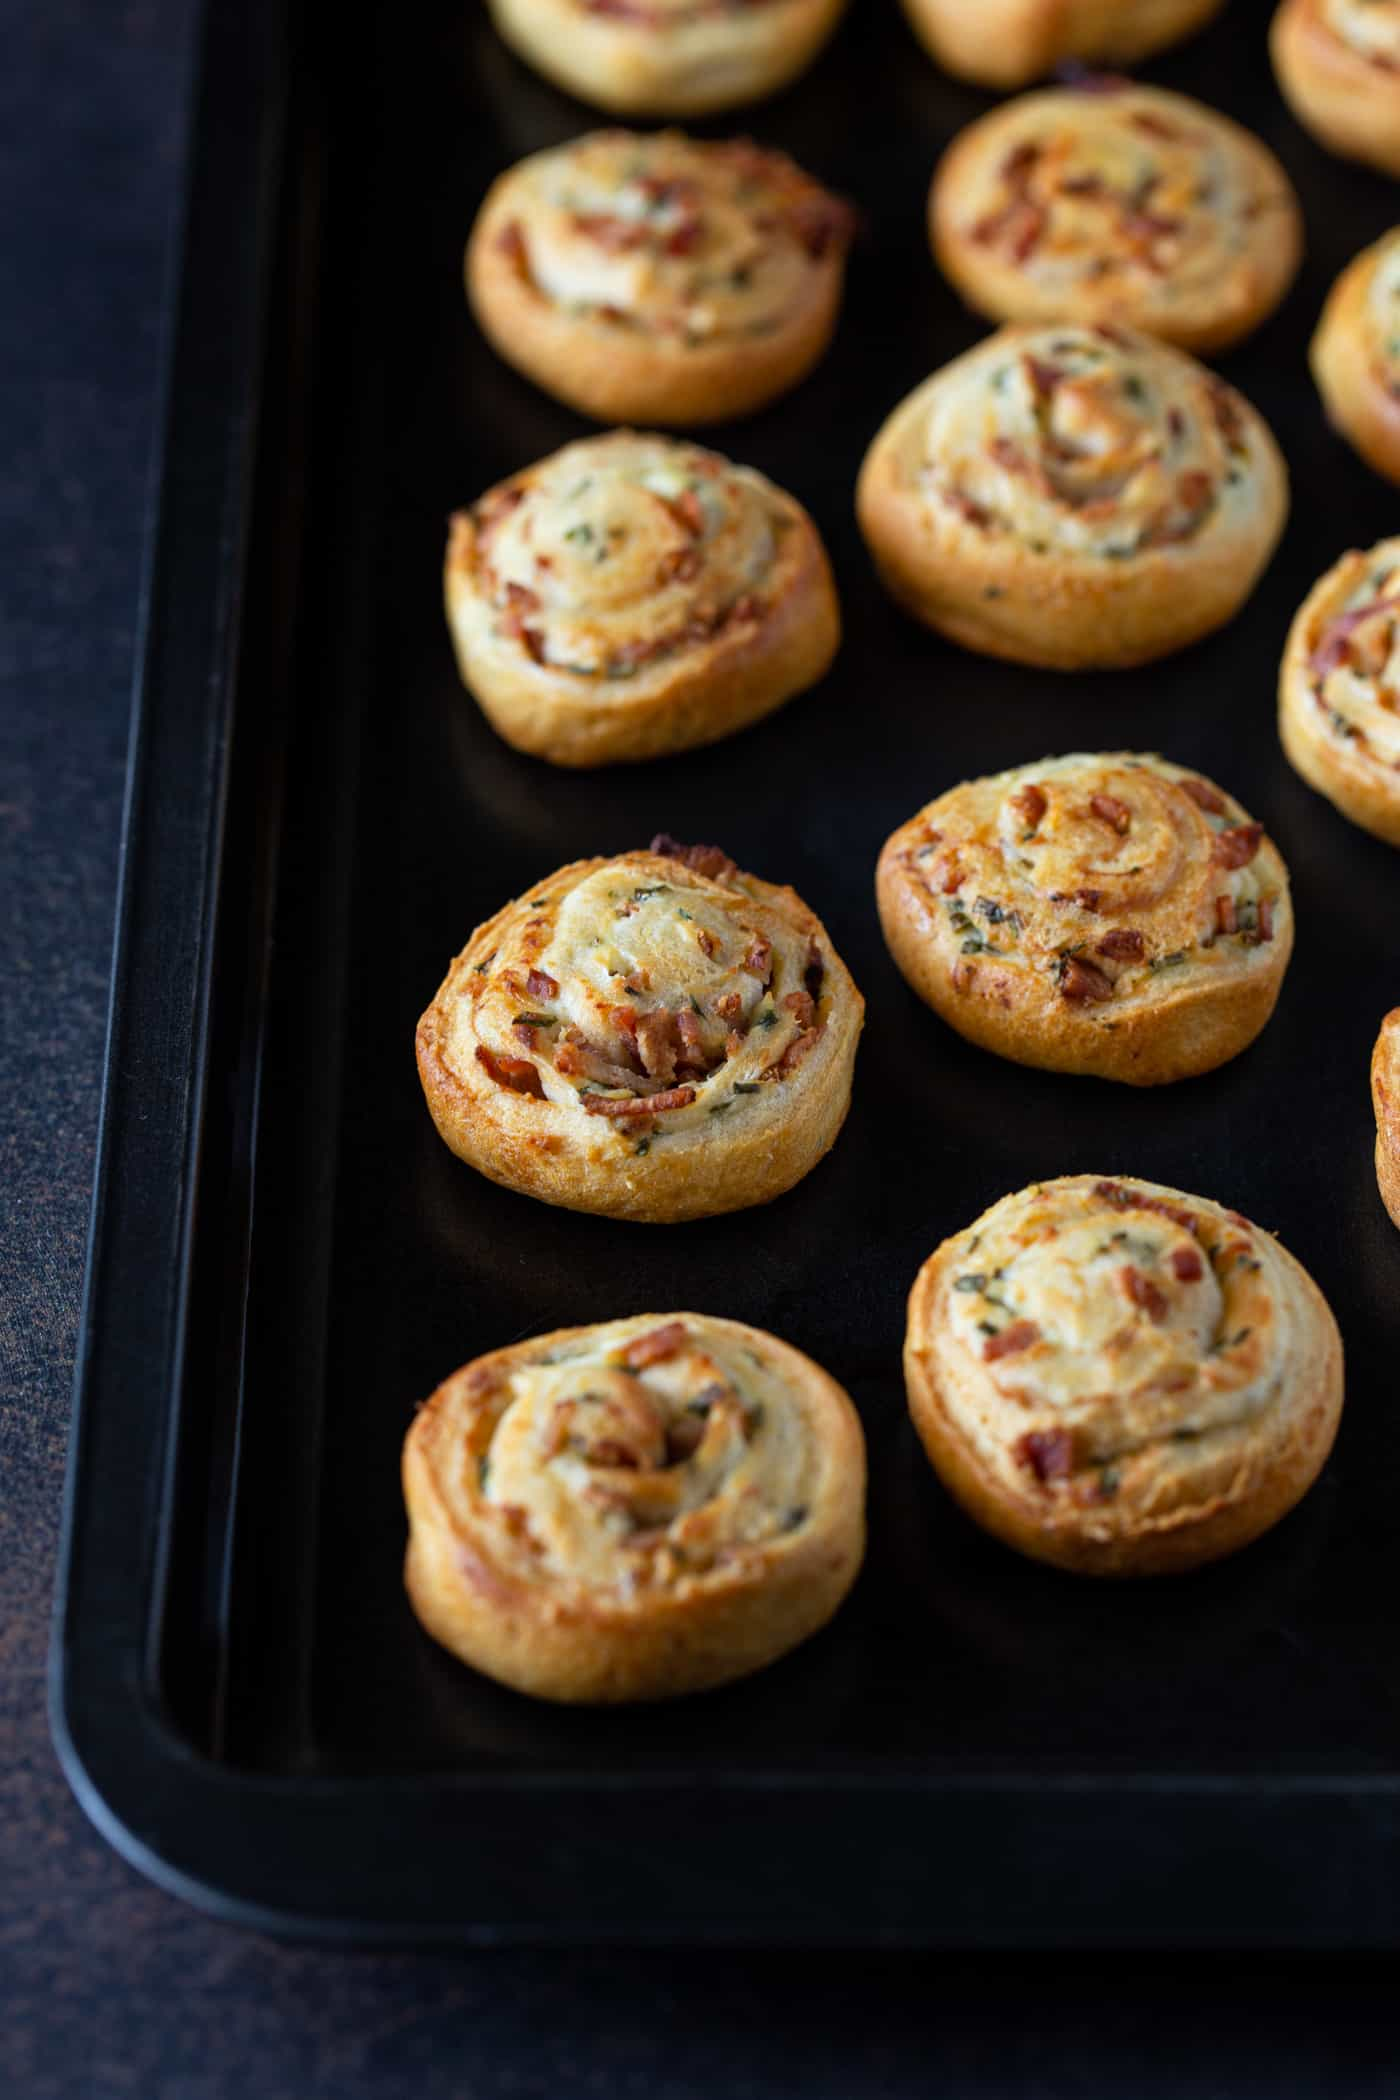 Bacon Cream Cheese Crescent Roll Appetizers on a dark metal sheet pan.